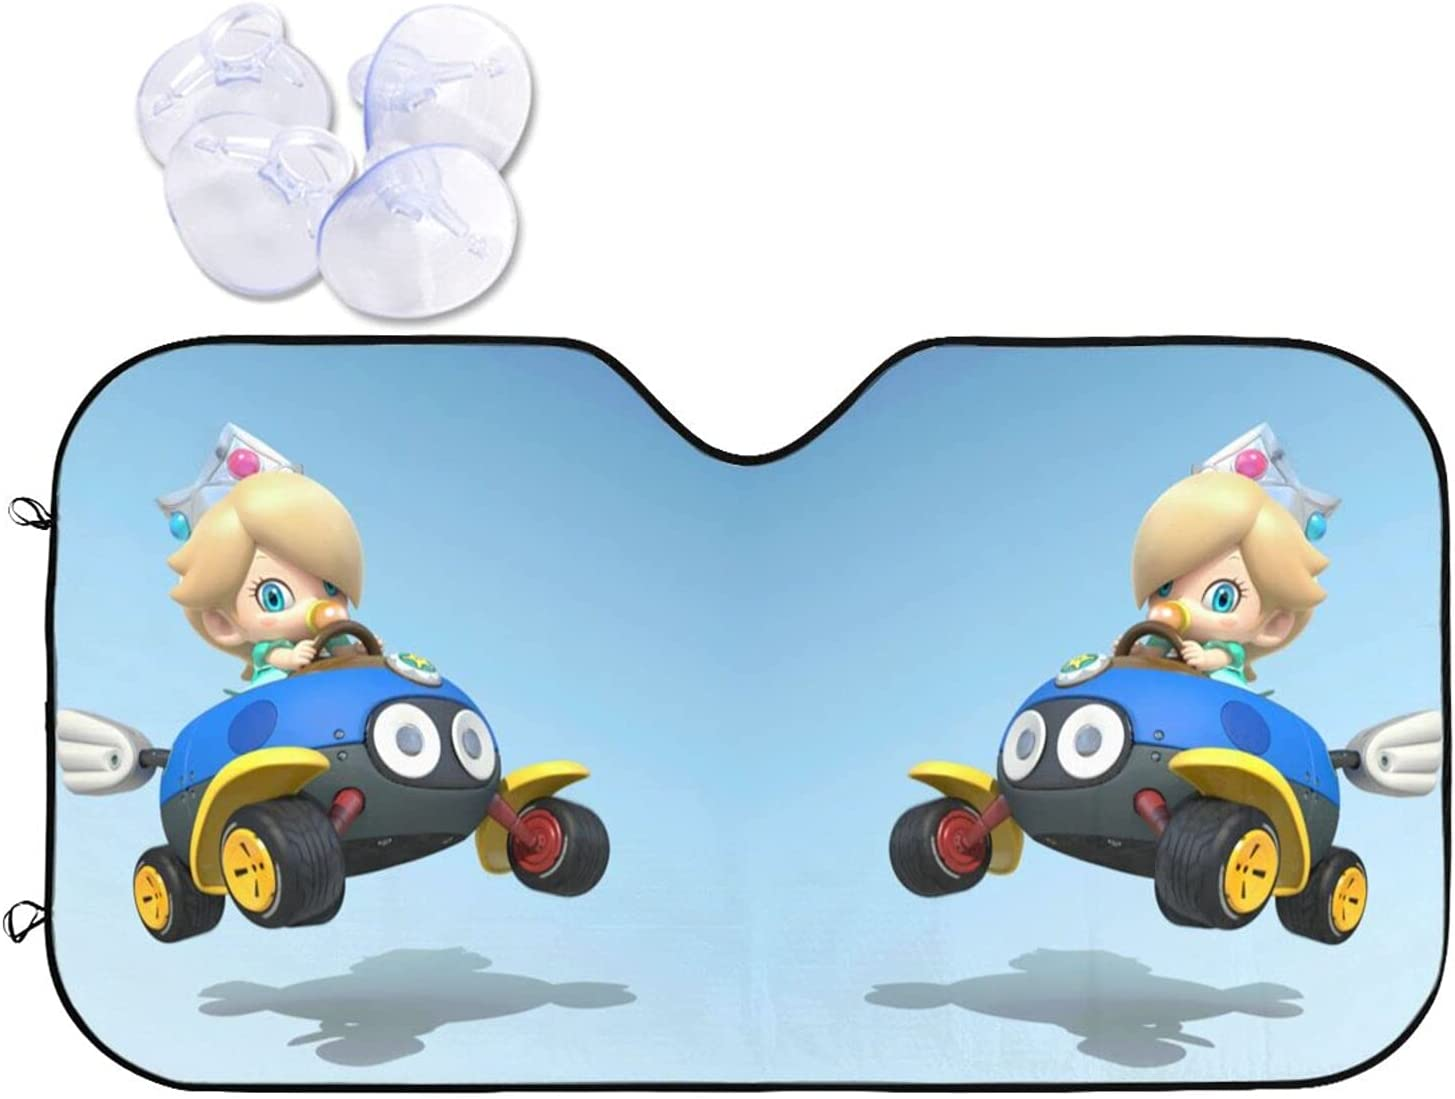 KDHASLDNF Mario Kart Superior 8 The Sun Hood Folds Your Vehi Houston Mall Protects and